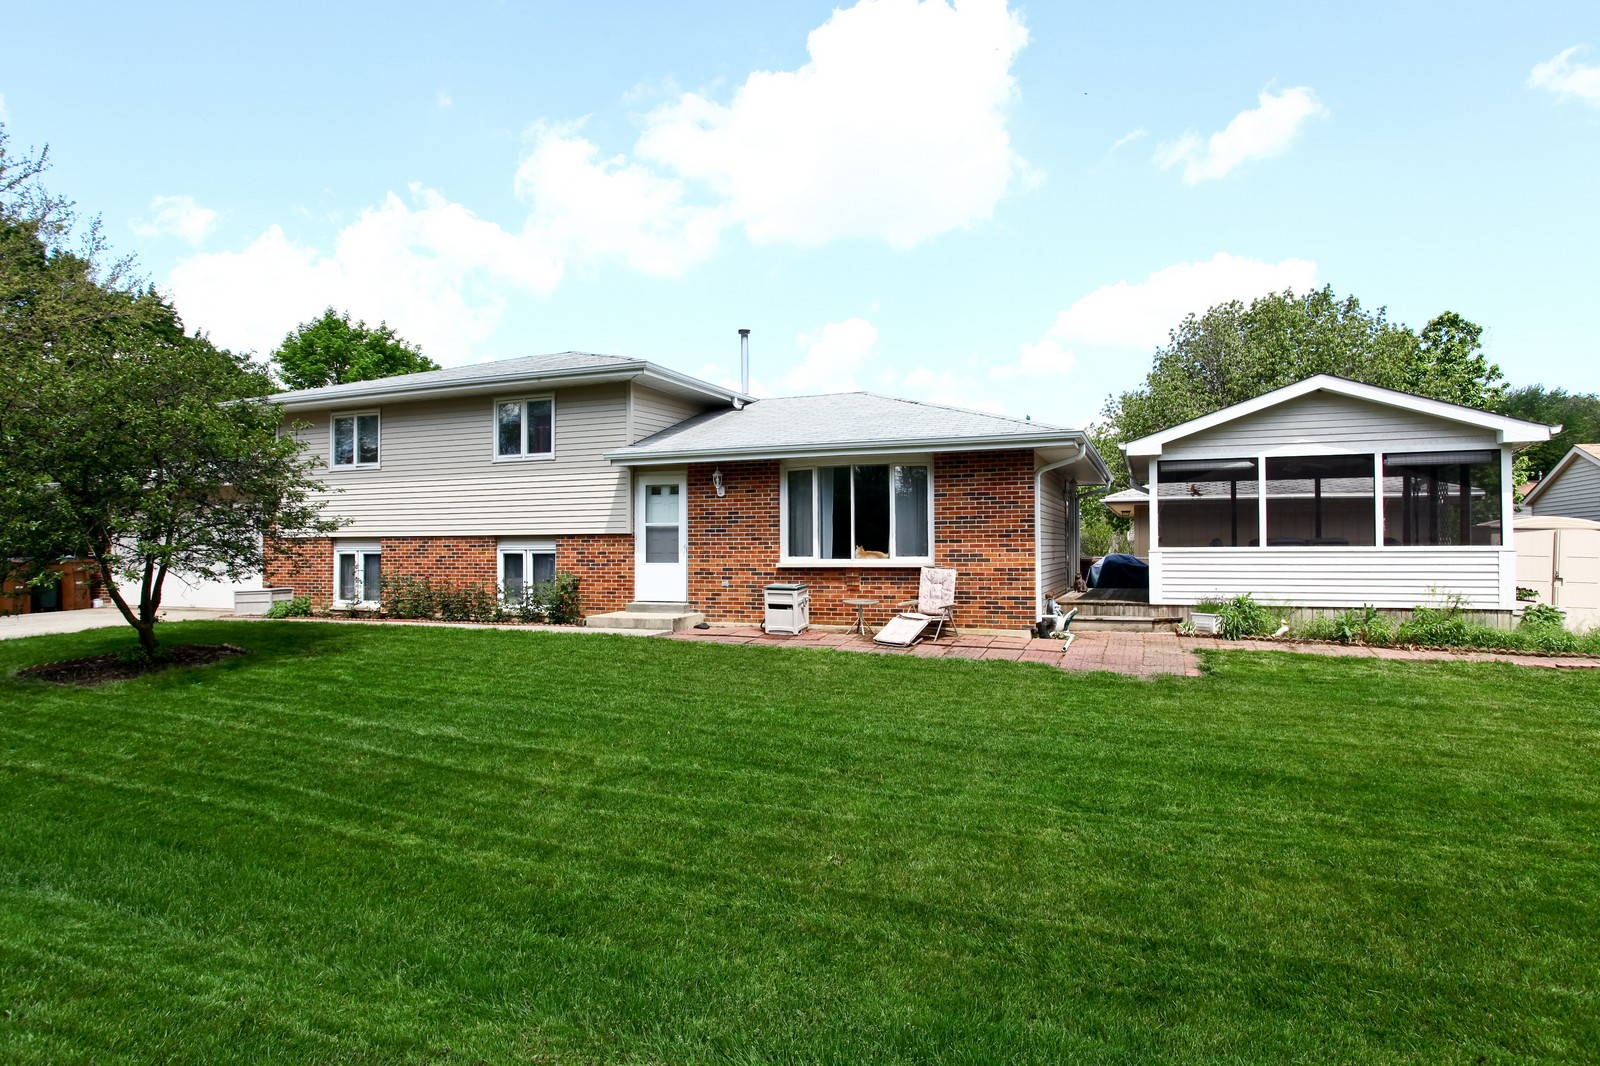 Real Estate Photography - 26W464 Cooley, Winfield, IL, 60190 - Front View